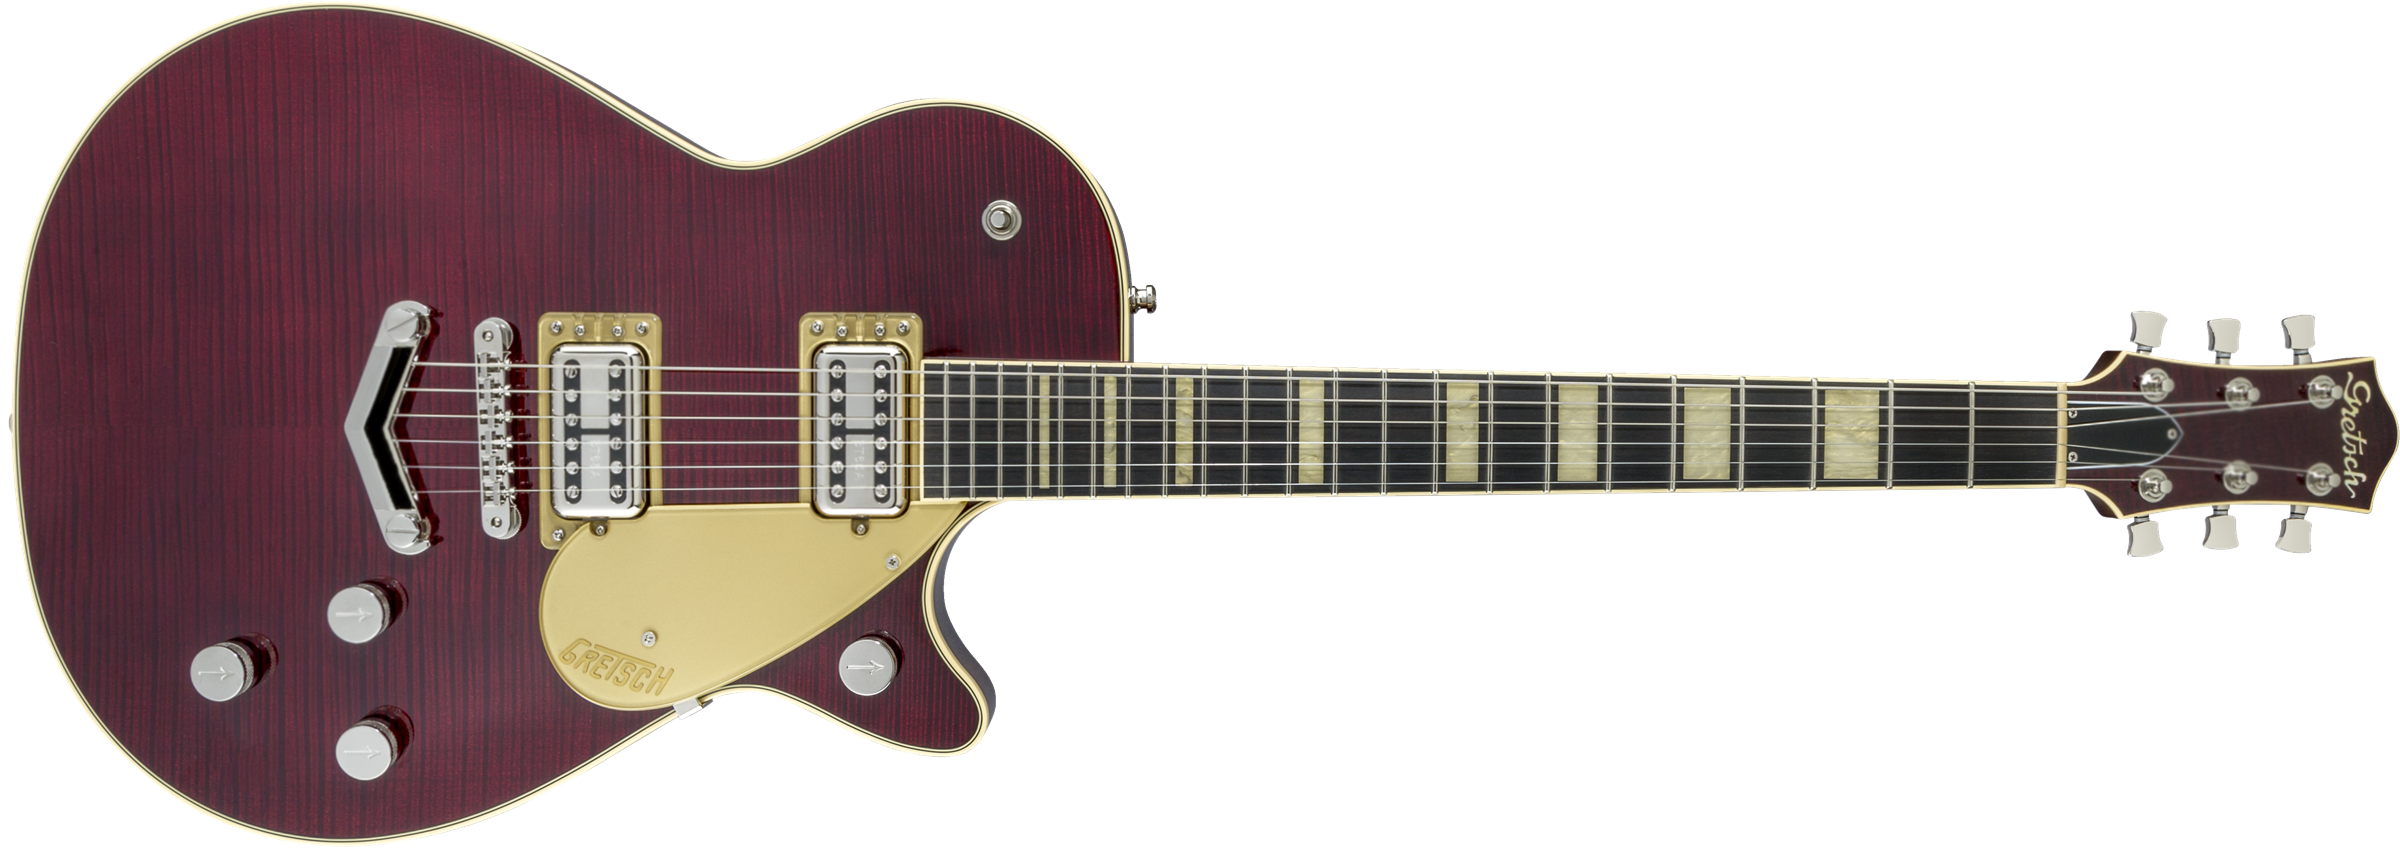 GRETSCH-G6228FM-Players-Edition-Jet-BT-with-V-Stoptail-and-Flame-Maple-Ebony-Fingerboard-Dark-Cherry-Stain-sku-571001184